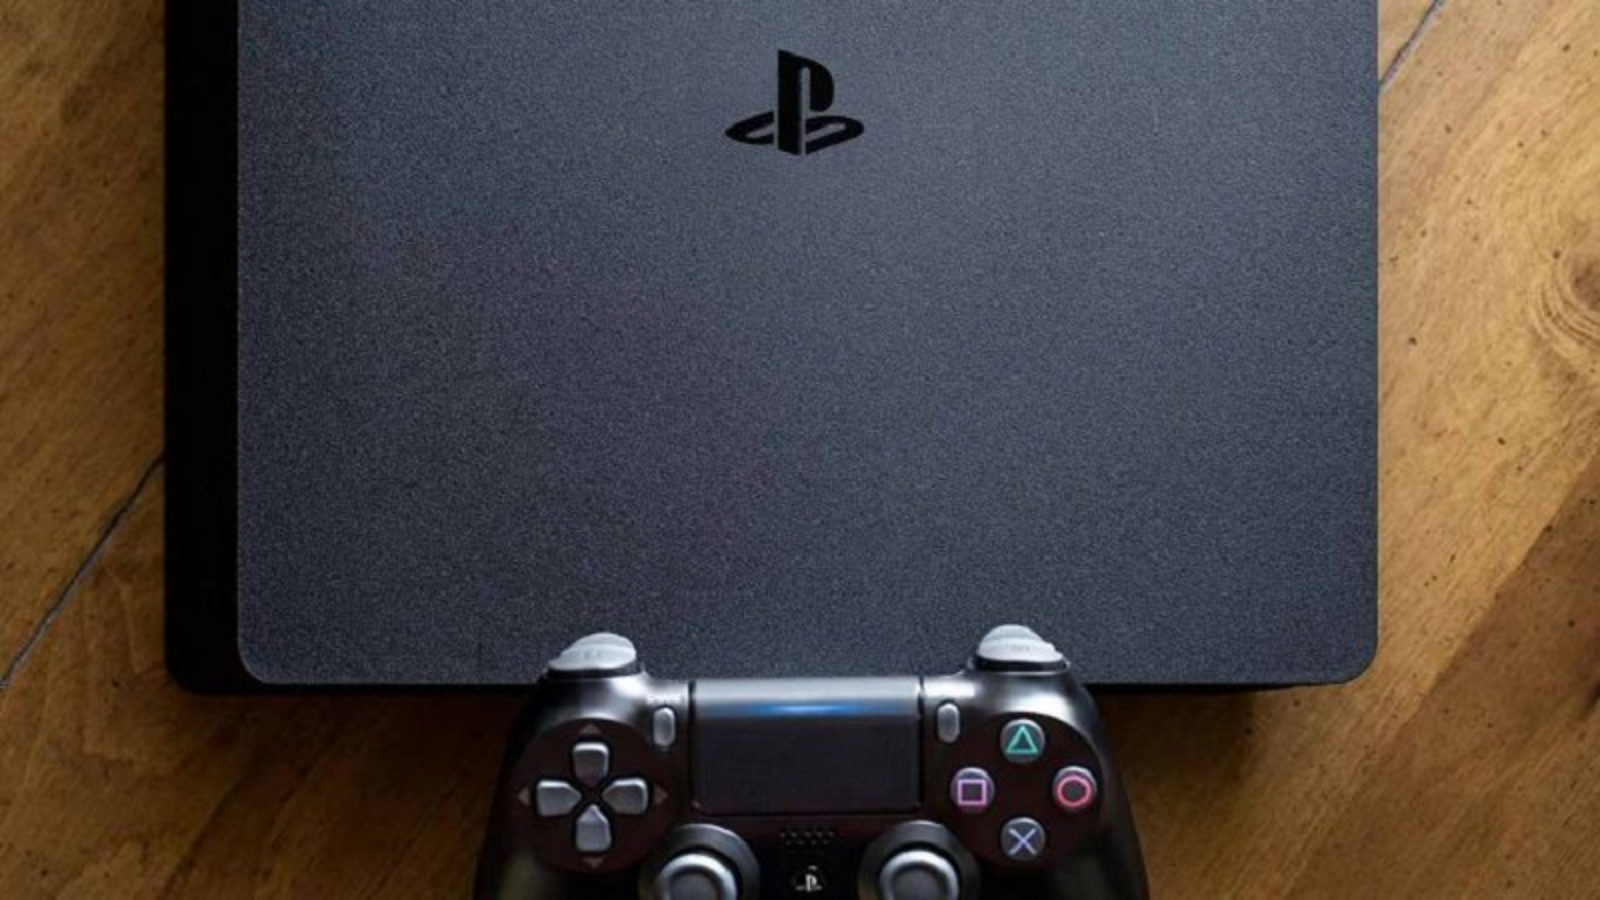 New PS4 Pro Models Seem Much Quieter